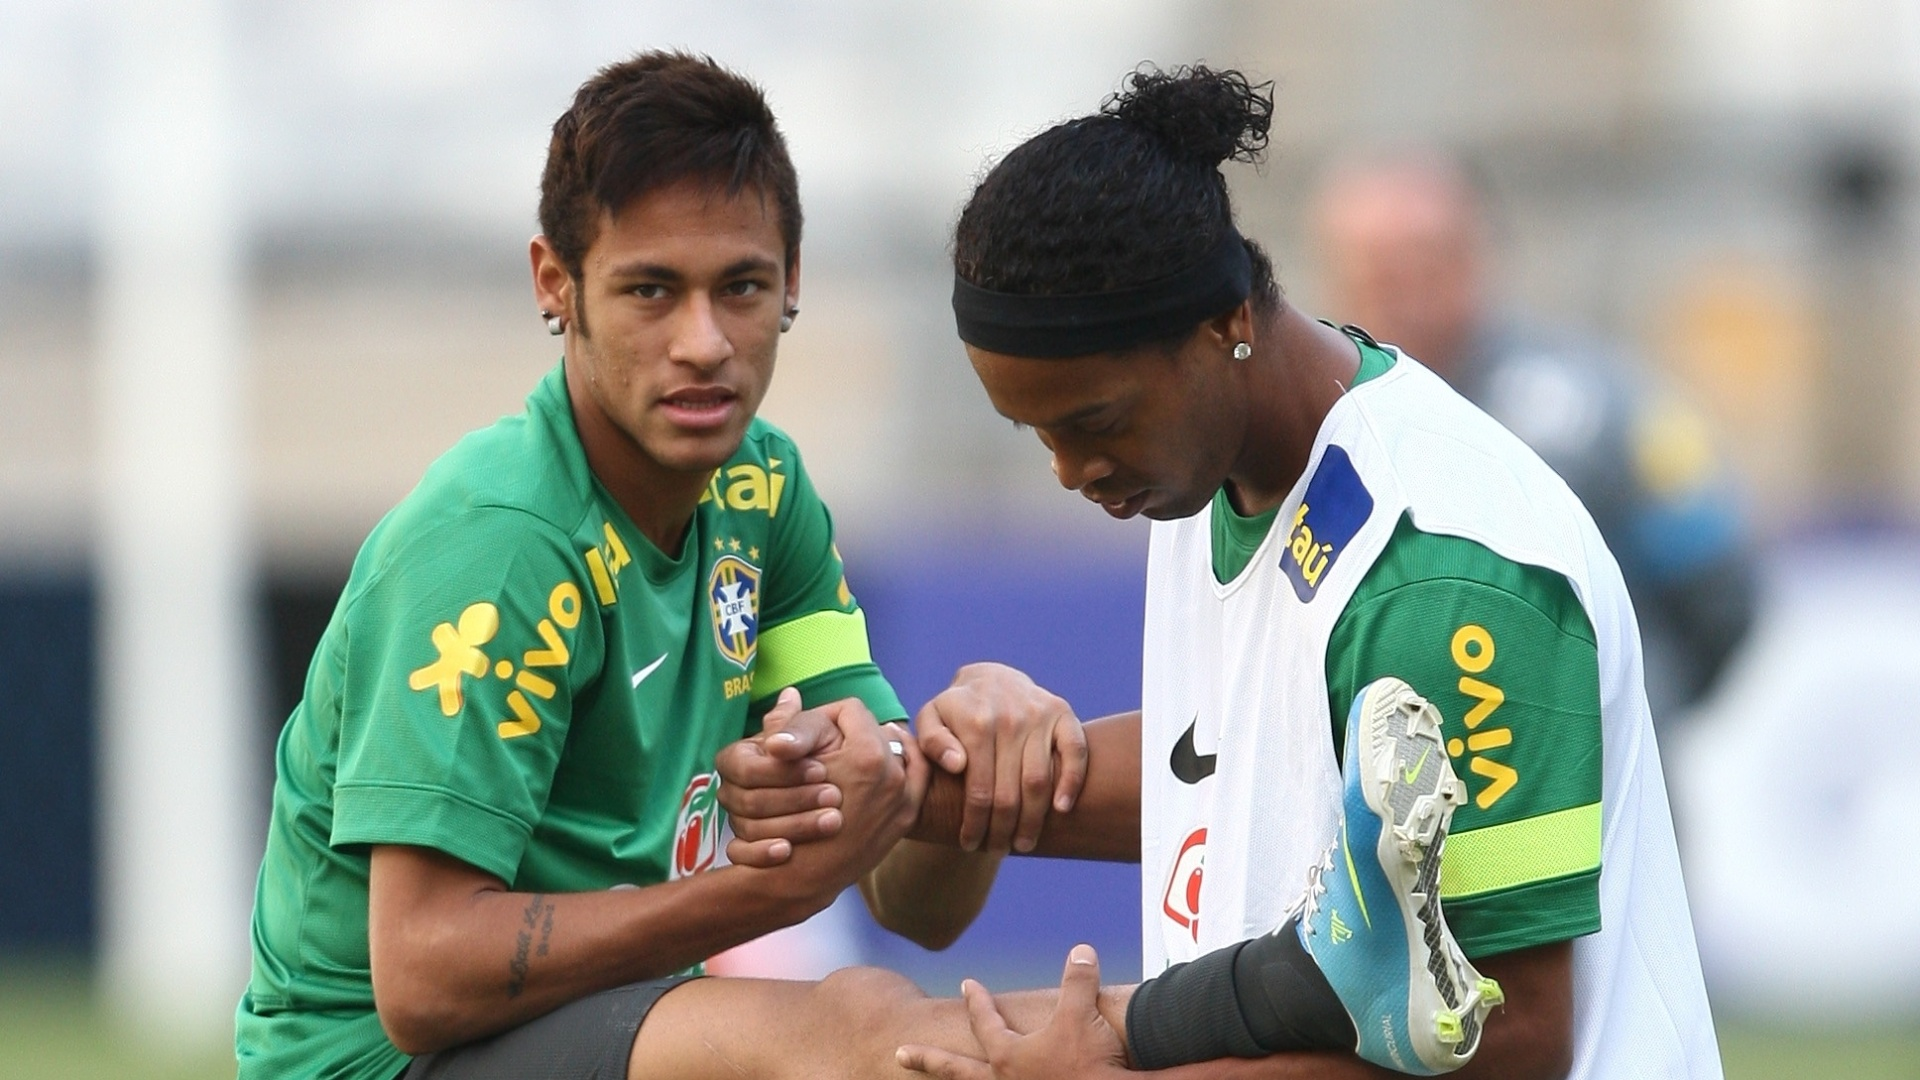 23.abr.2013 - Meia Ronaldinho Gacho ajuda o atacante Neymar no aquecimento no treino da seleo brasileira  no Mineiro